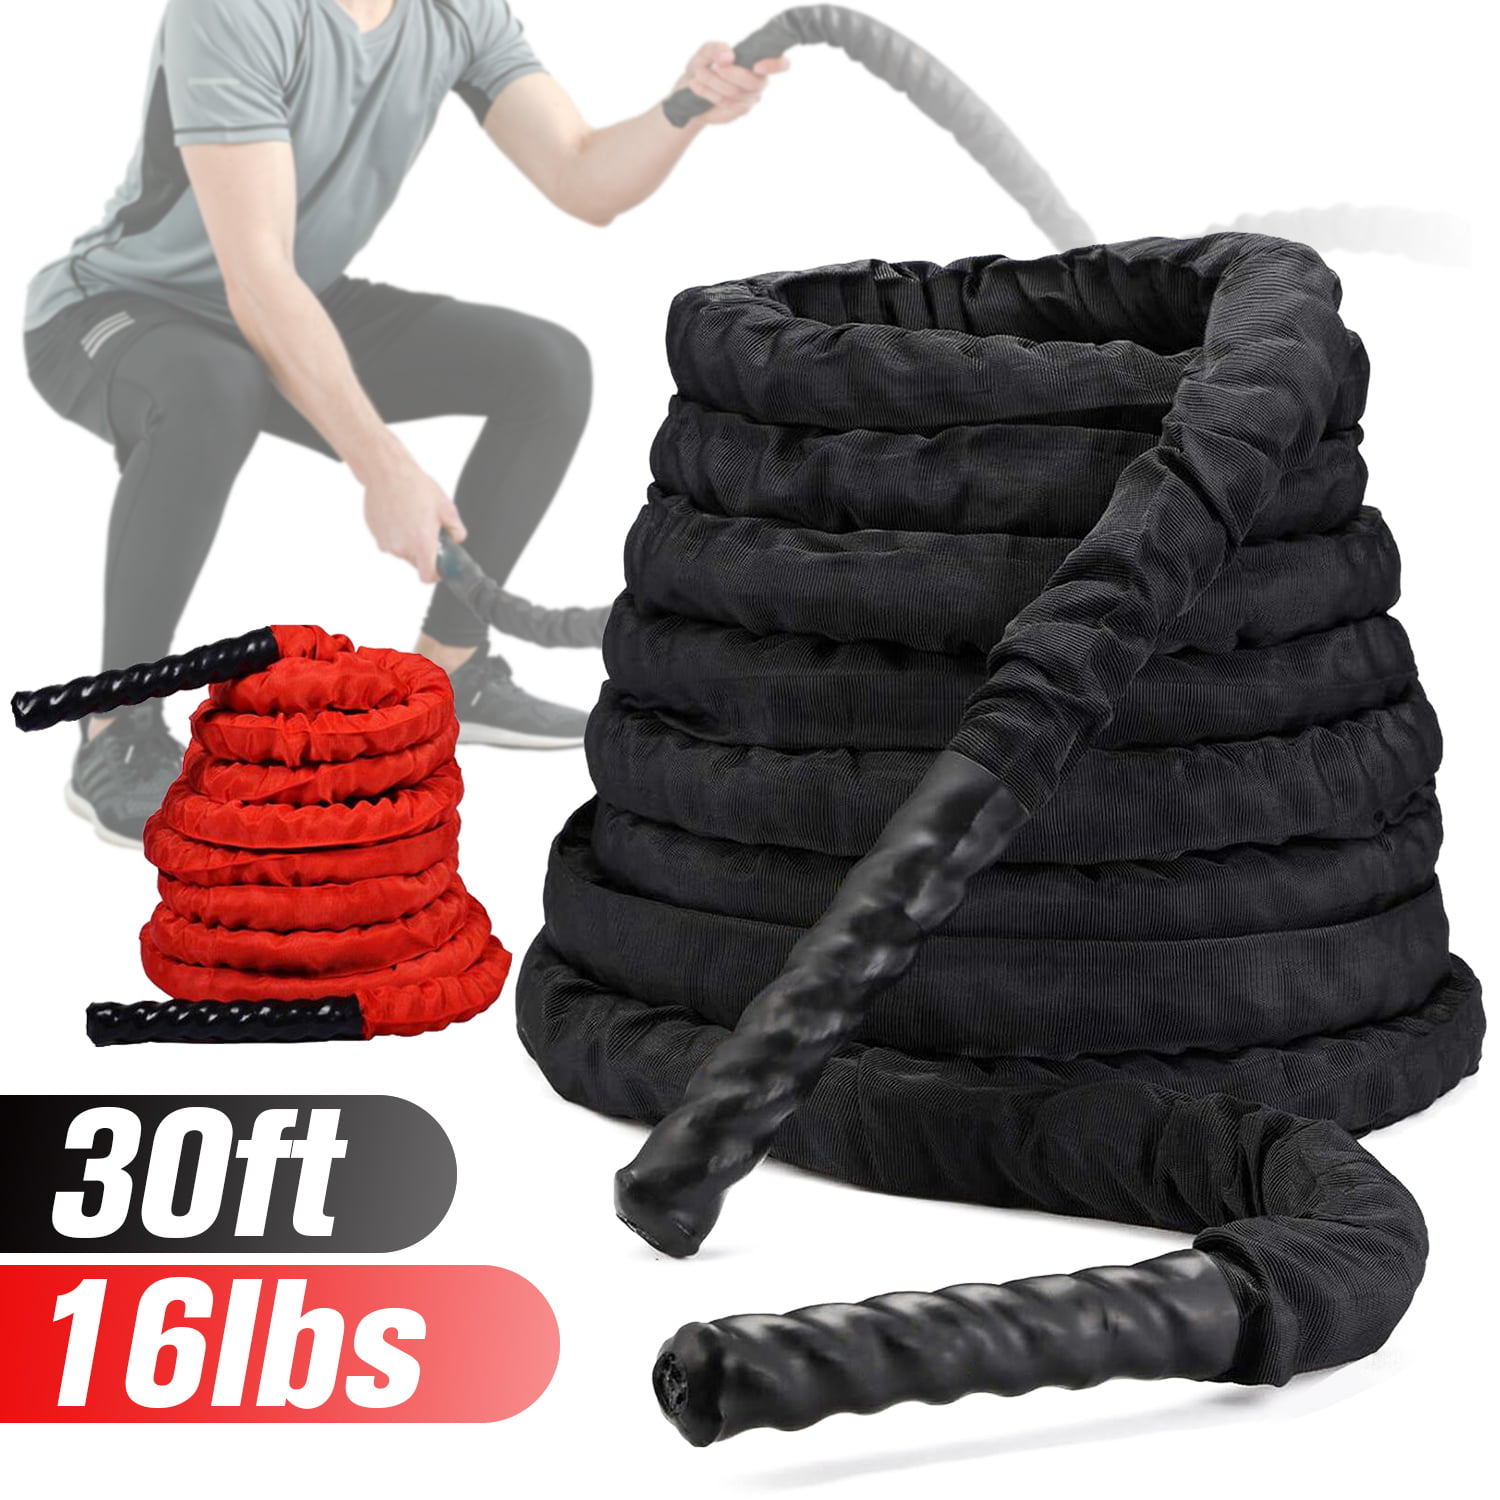 Details about  /30Ft Poly Dacron Battle Rope Strength Training Outdoor Climbing Protection Rope